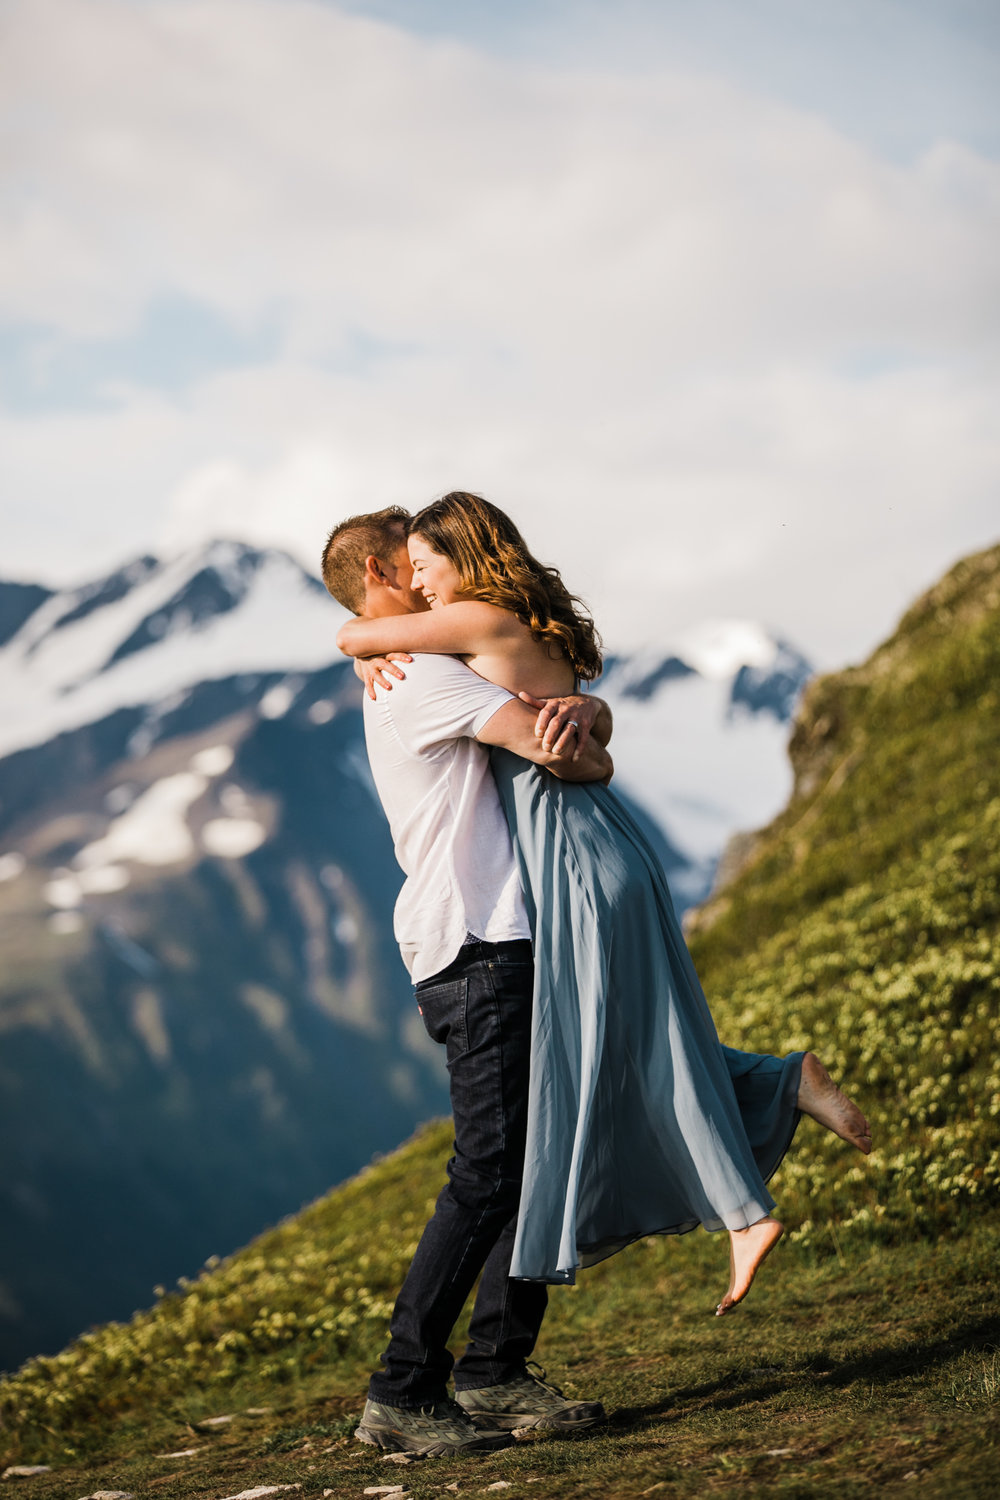 adventurous wedding anniversary session in alyeska, alaska | alaska elopement photographer | mountain resort elopement inspiration | the hearnes adventure photography | www.thehearnes.com